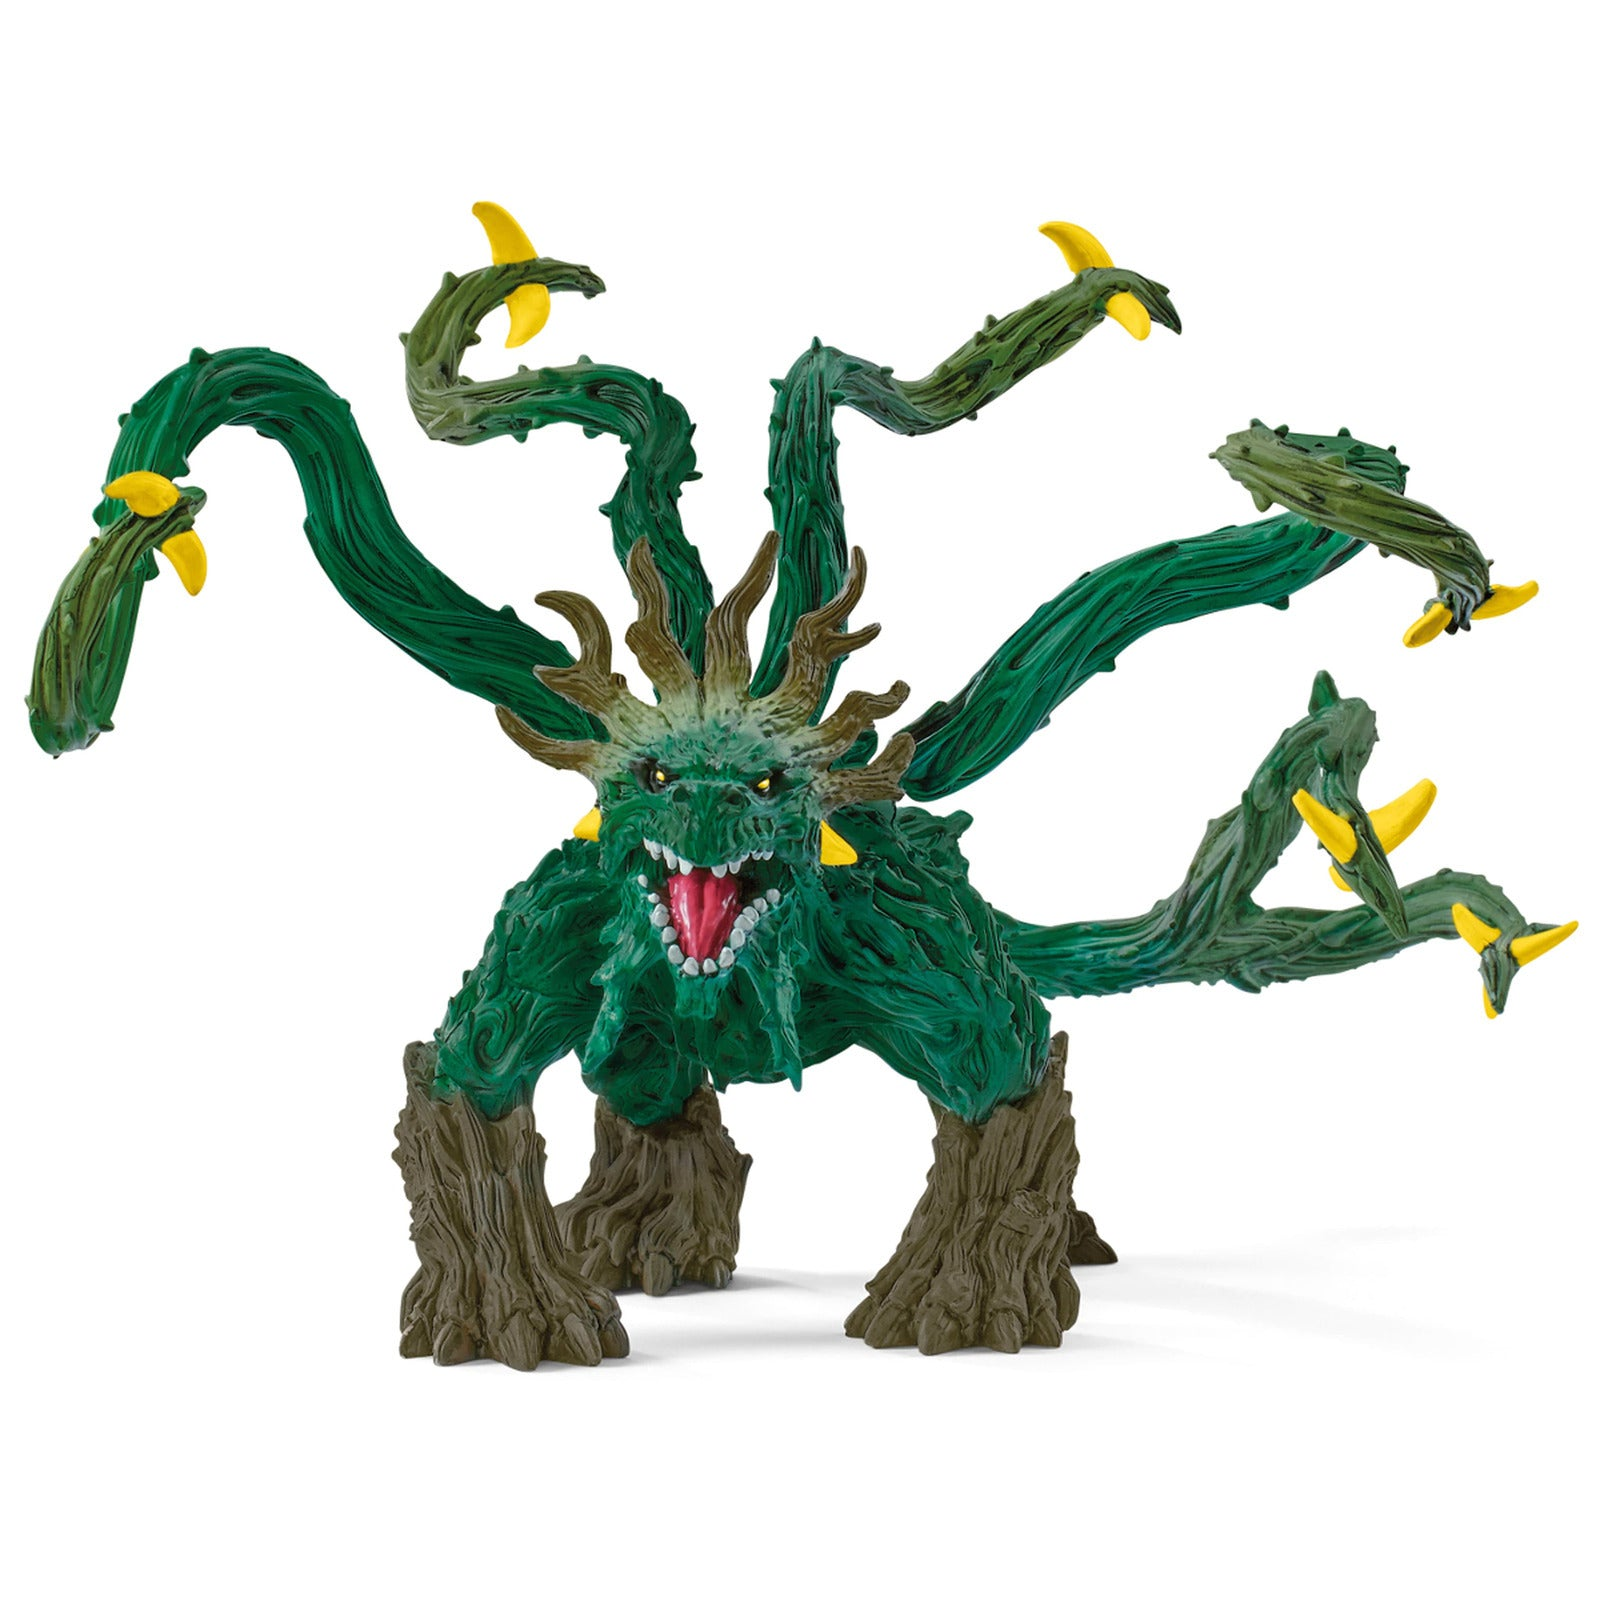 Schleich 70144 Jungle Monster